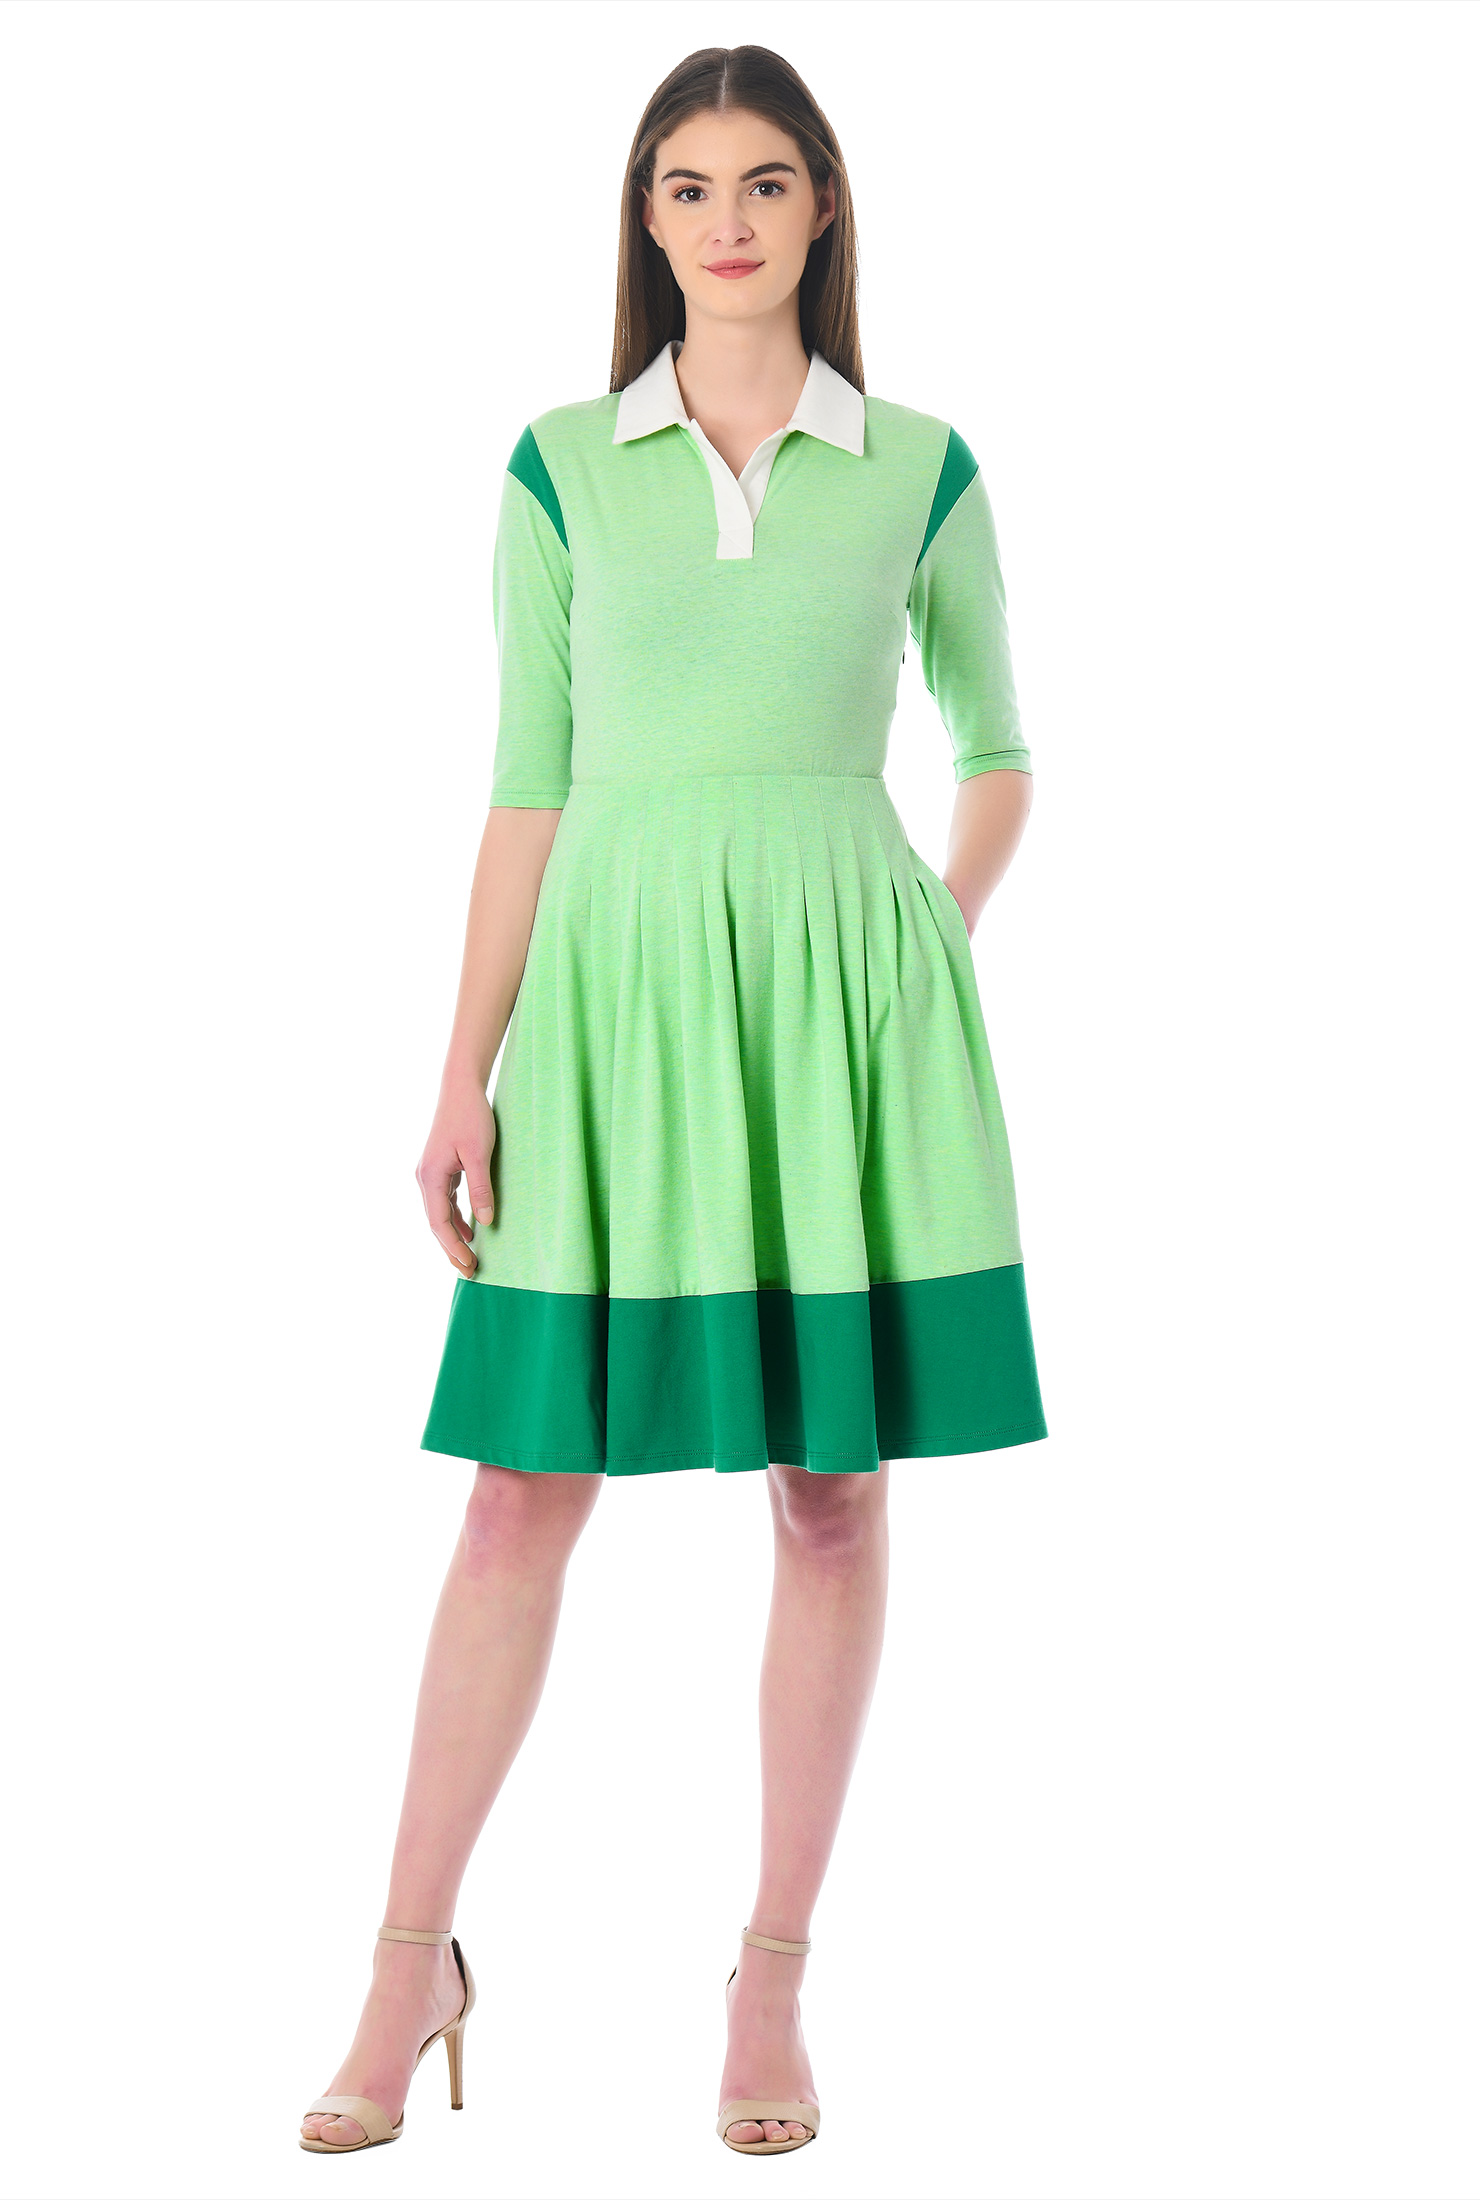 eShakti Women's Contrast trim cotton knit dress